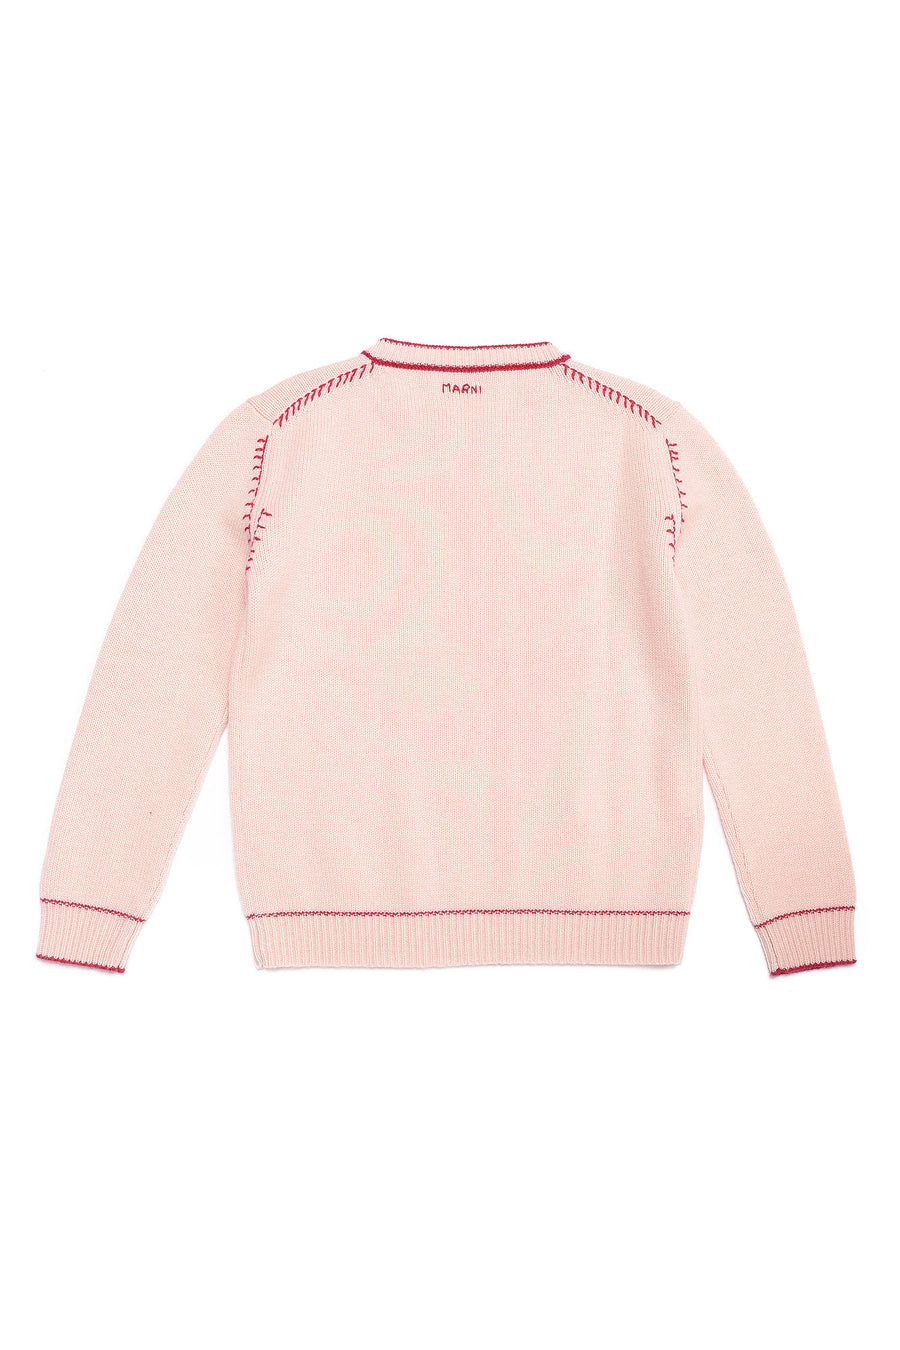 Pink Edge Classy Sweater by Marni